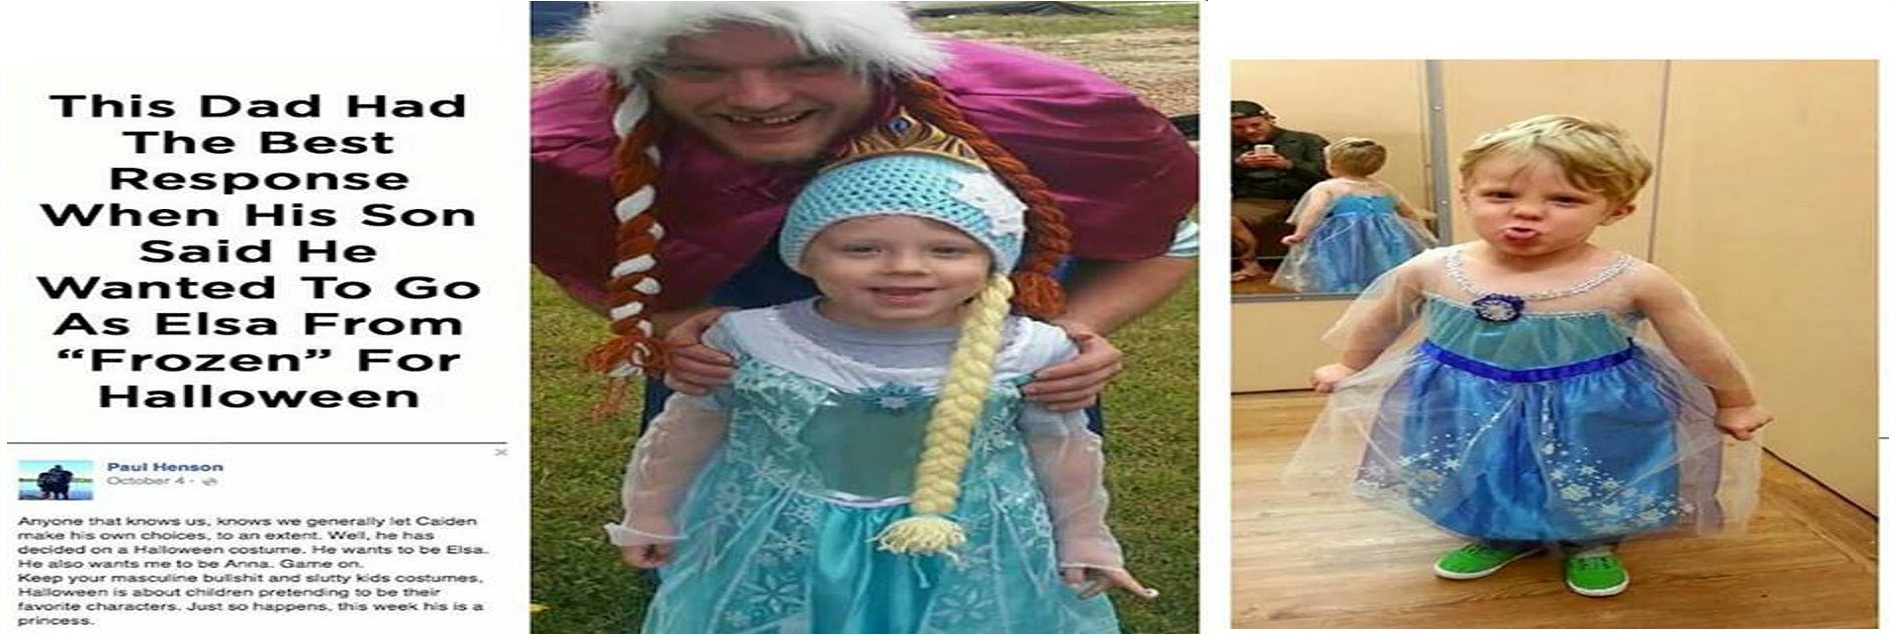 viral: father and son go as queen elsa and princess anna for